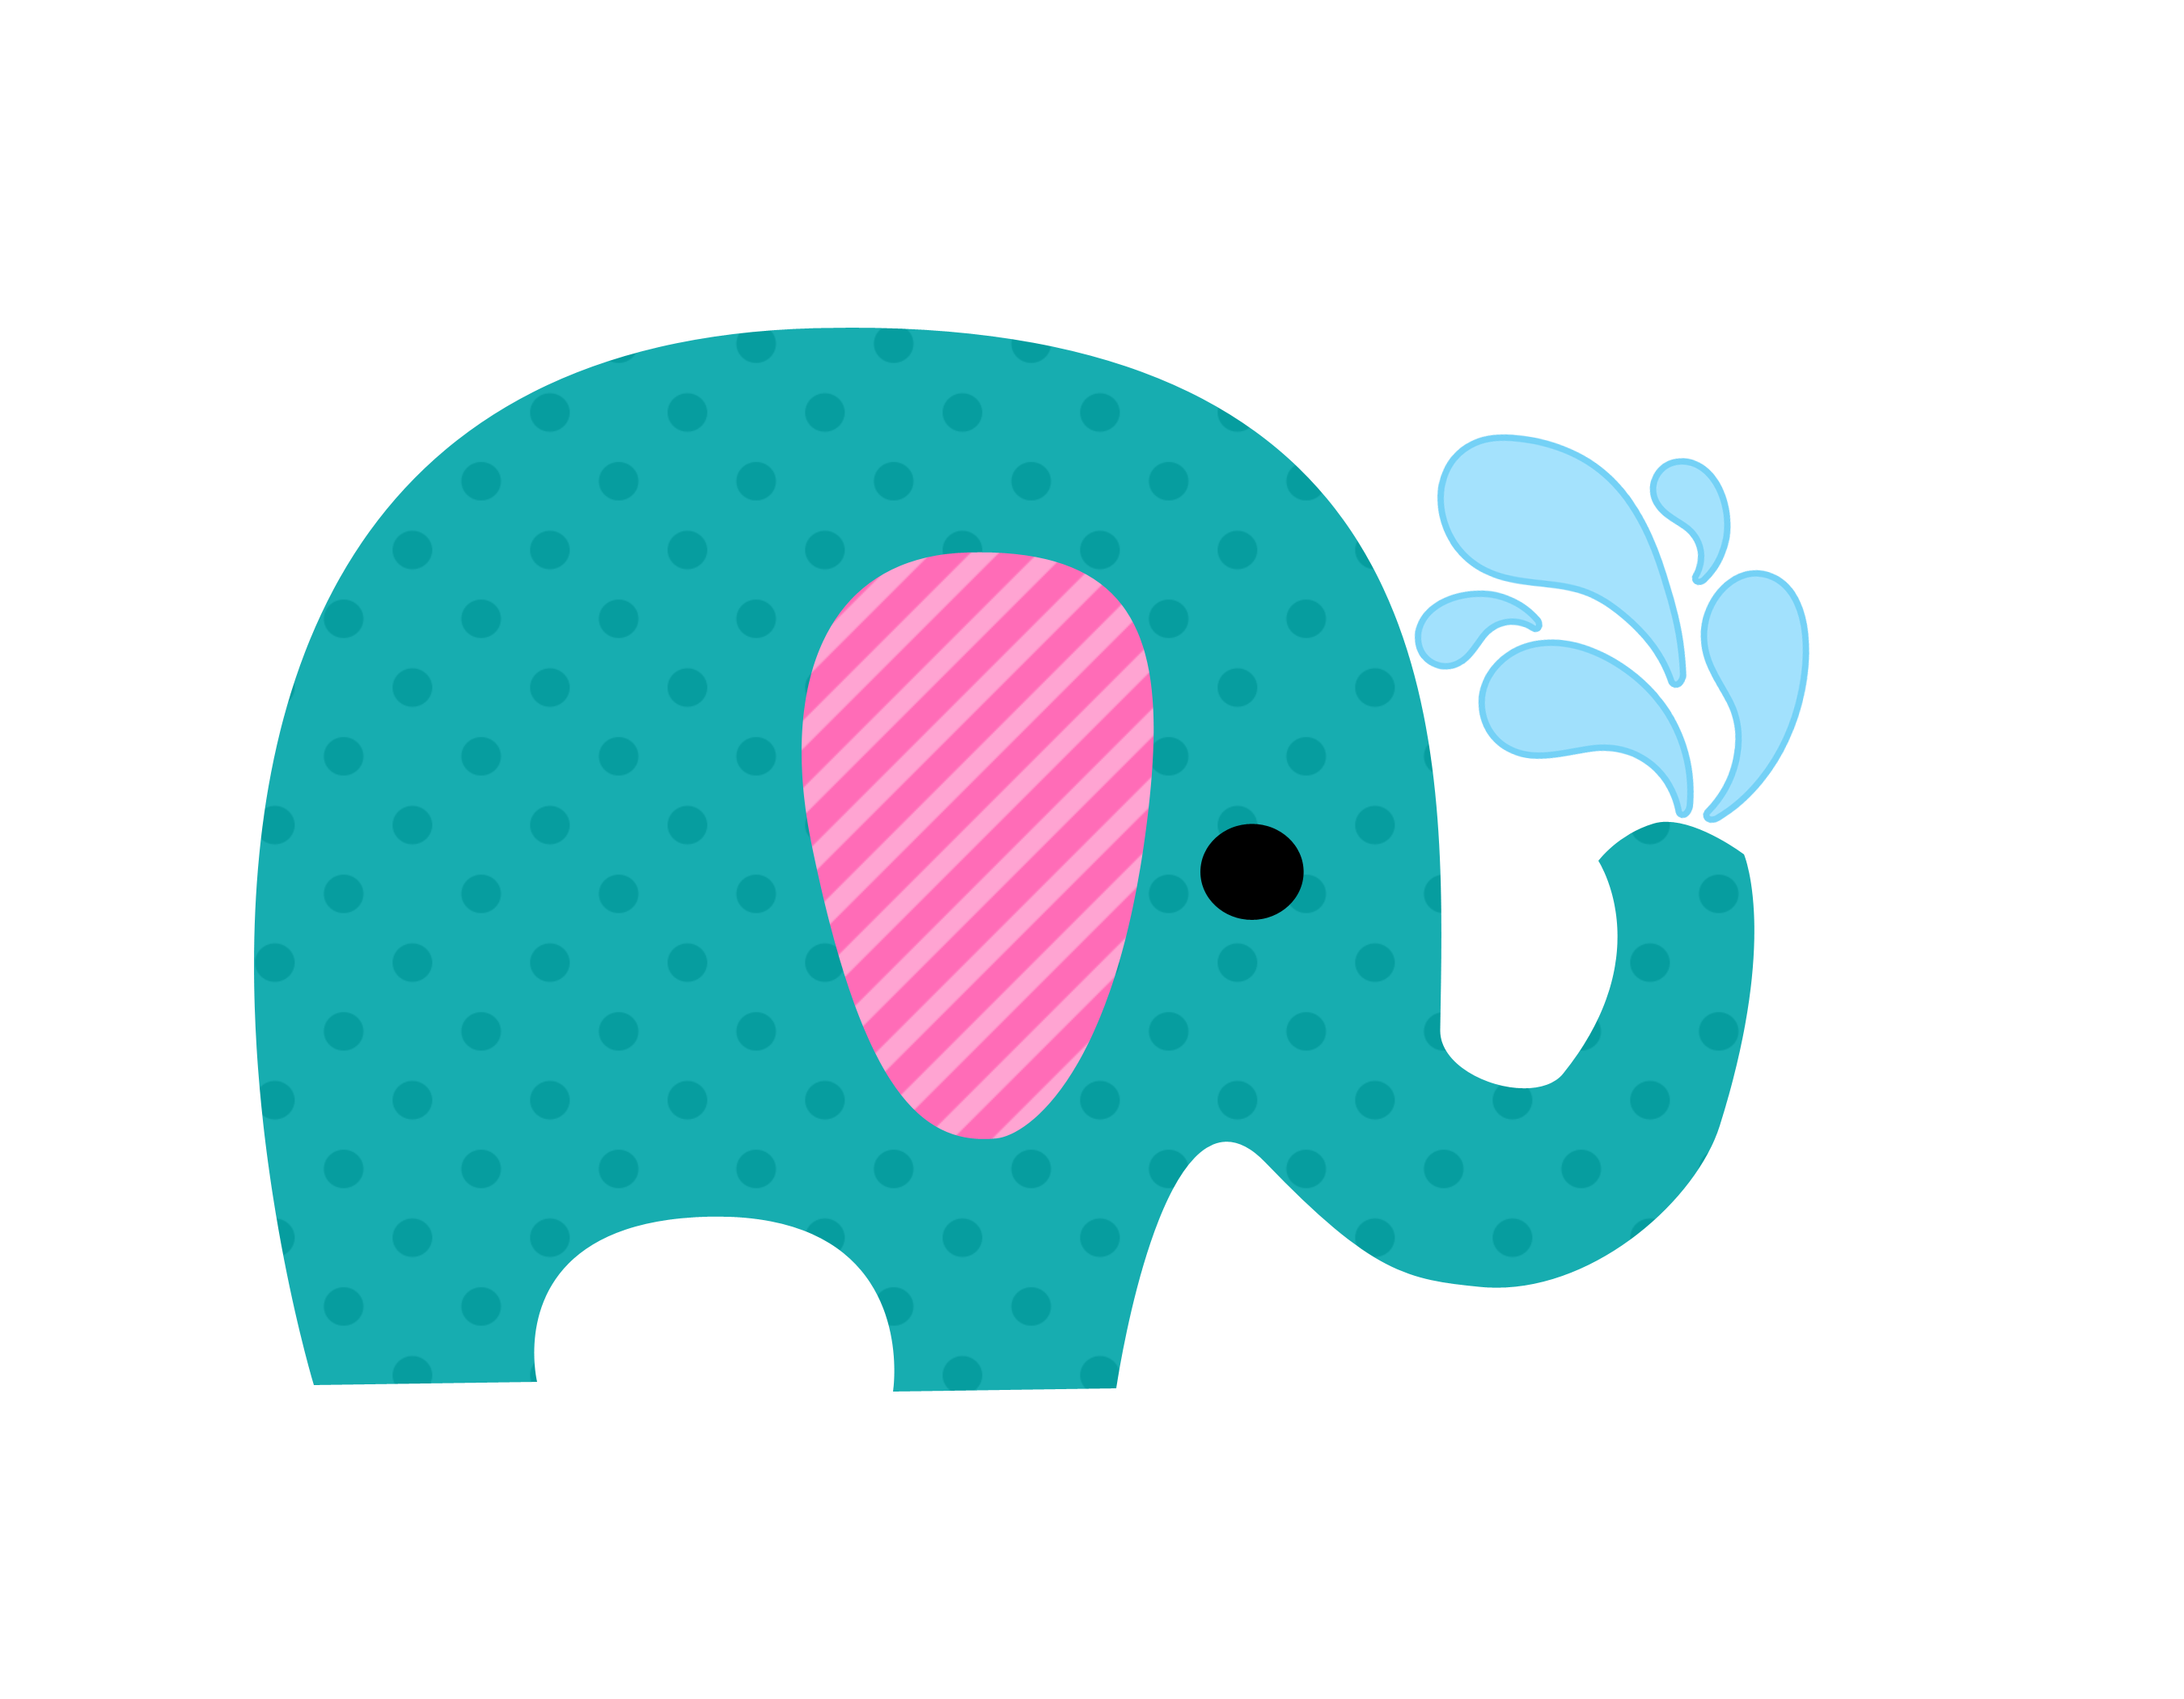 Elefantes - CuteElephants5.png - Minus | clipart | Pinterest ... clipart freeuse library